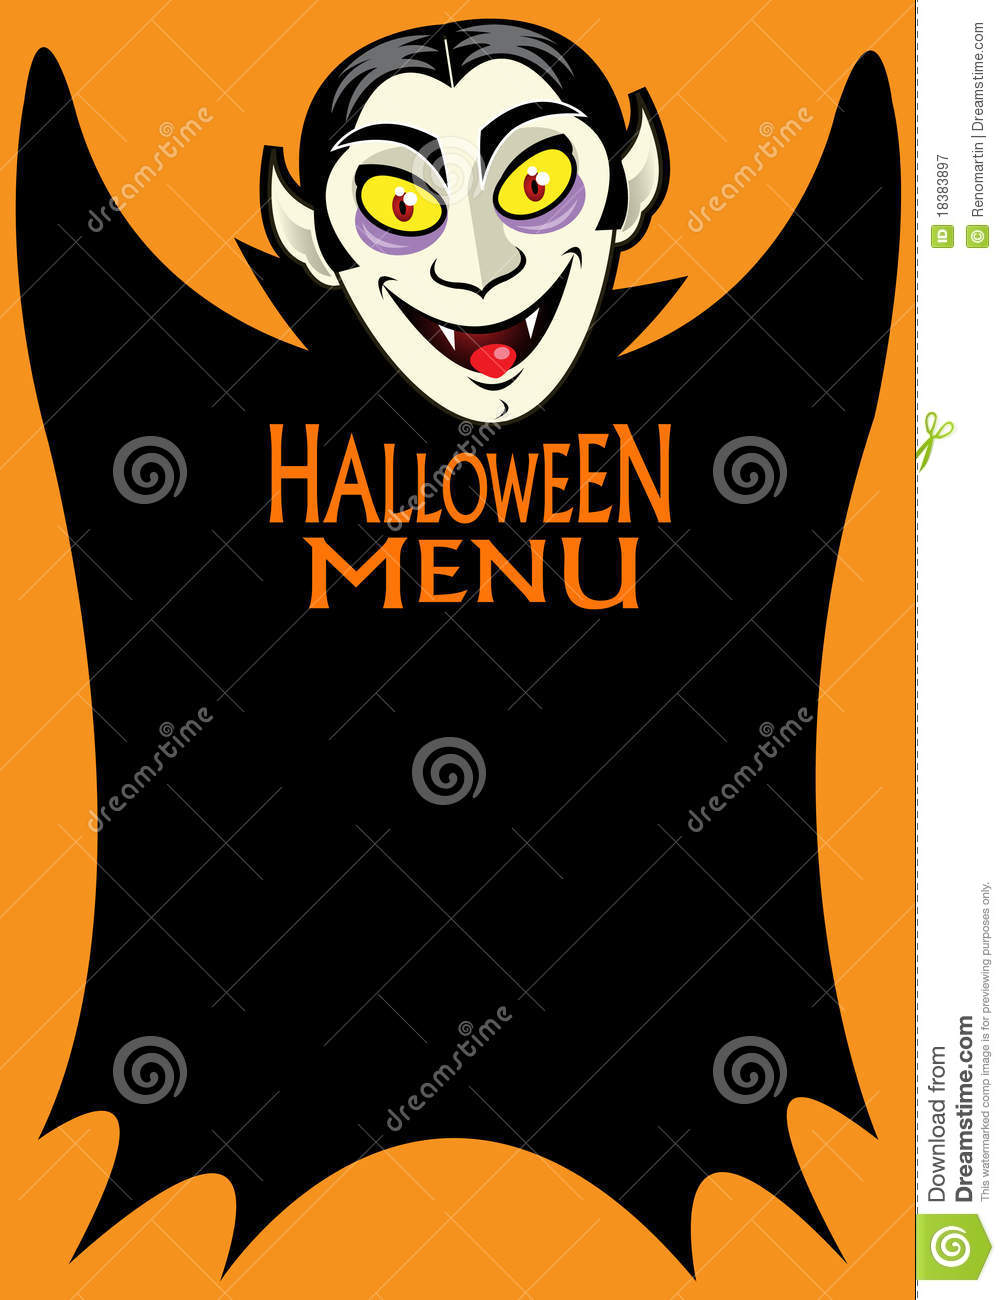 Halloween Menu Royalty Free Stock Photography - Image: 18383897